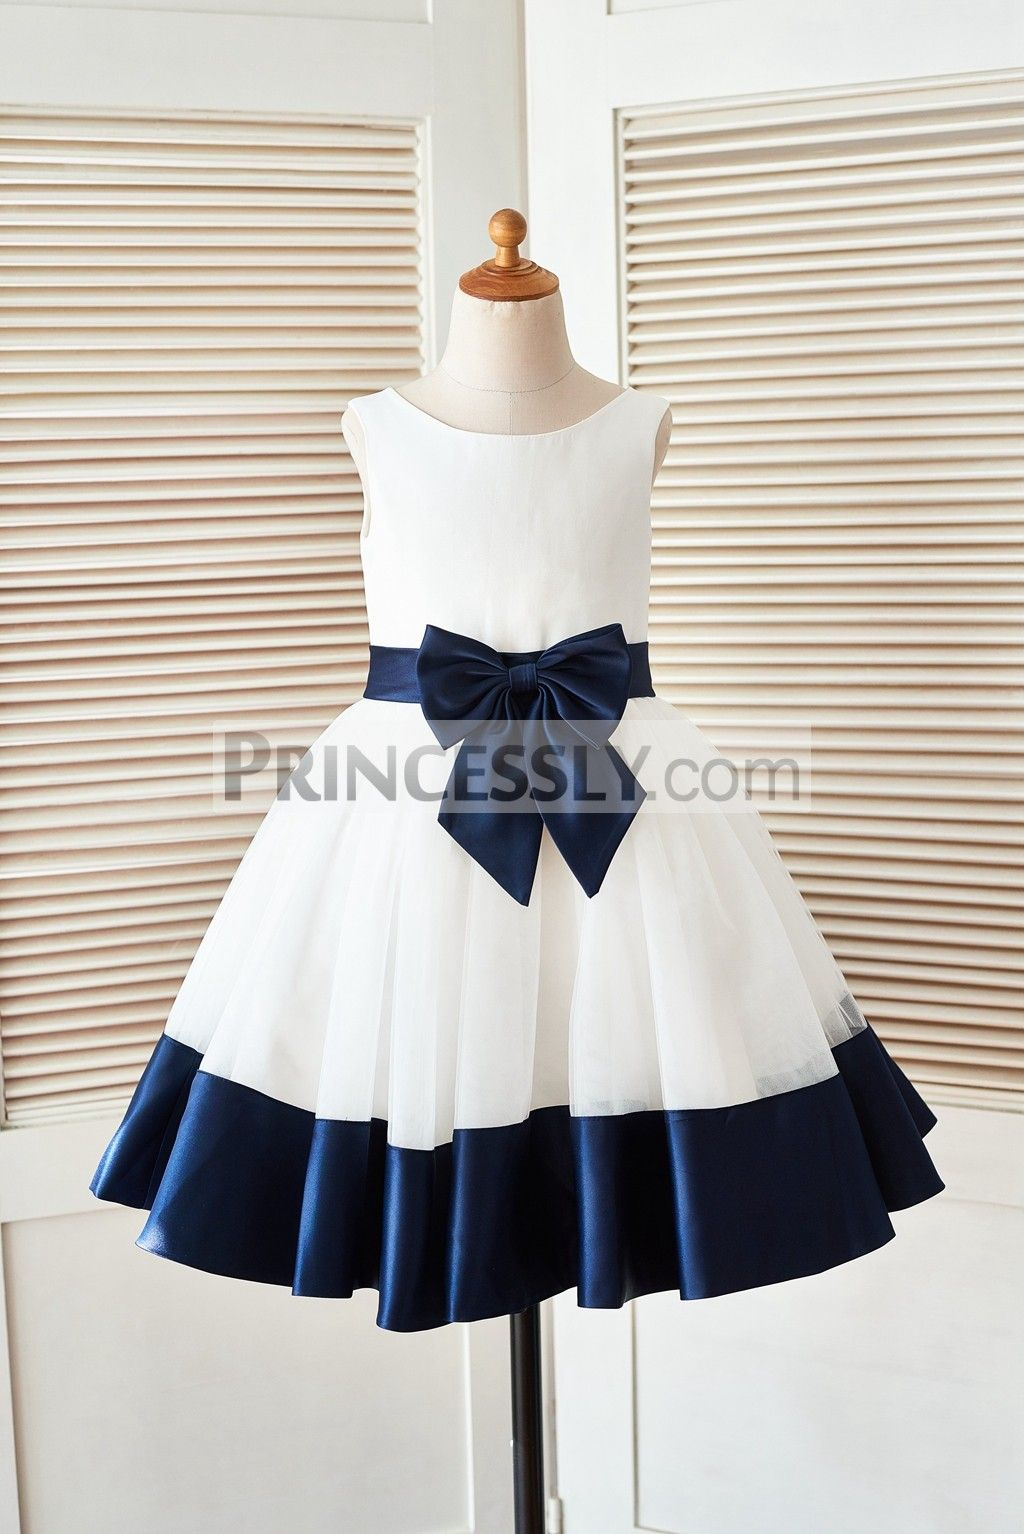 Ivory Satin Tulle Flower Girl Dress With Navy Blue Beltbow